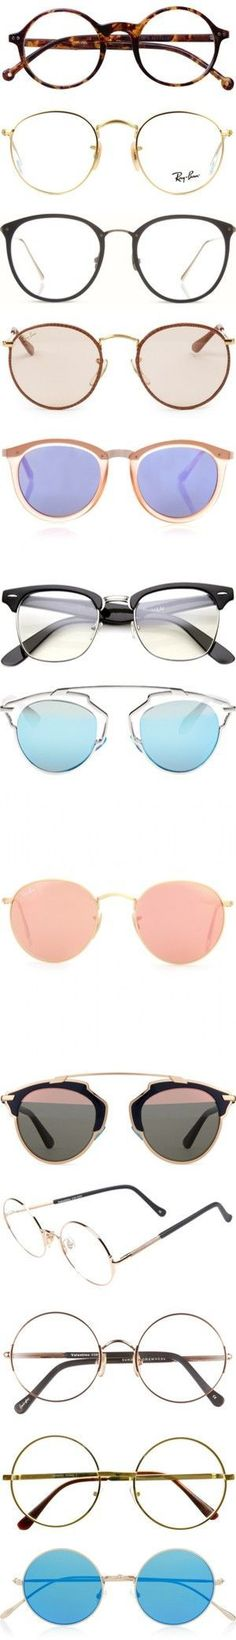 42da0ab73232 glasses by sabina-127 on Polyvore featuring women s fashion